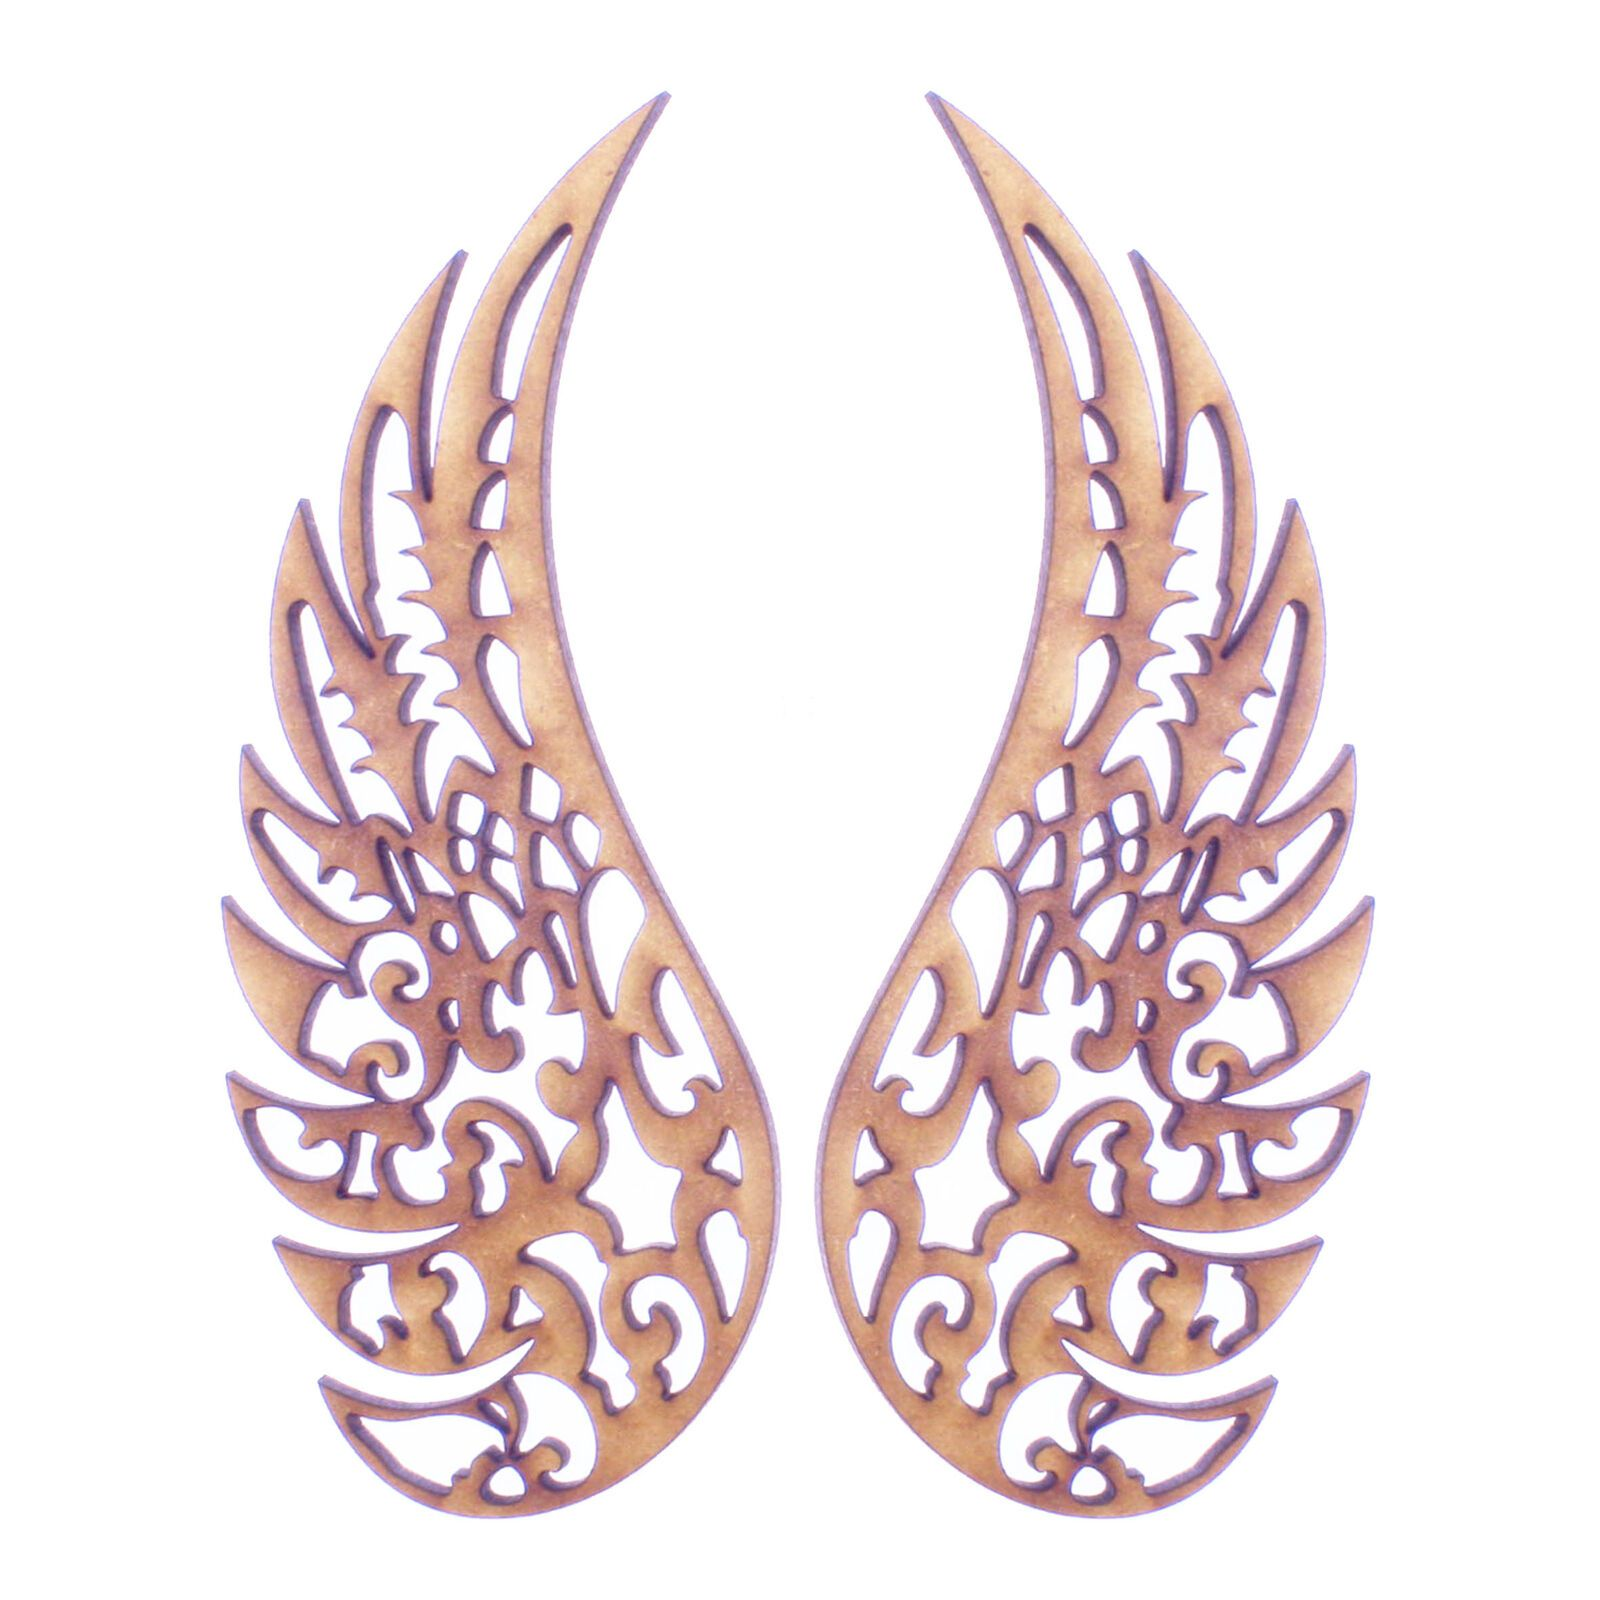 3mm MDF Wooden Laser Cut Shapes Various Sizes Decorative Angel Wings